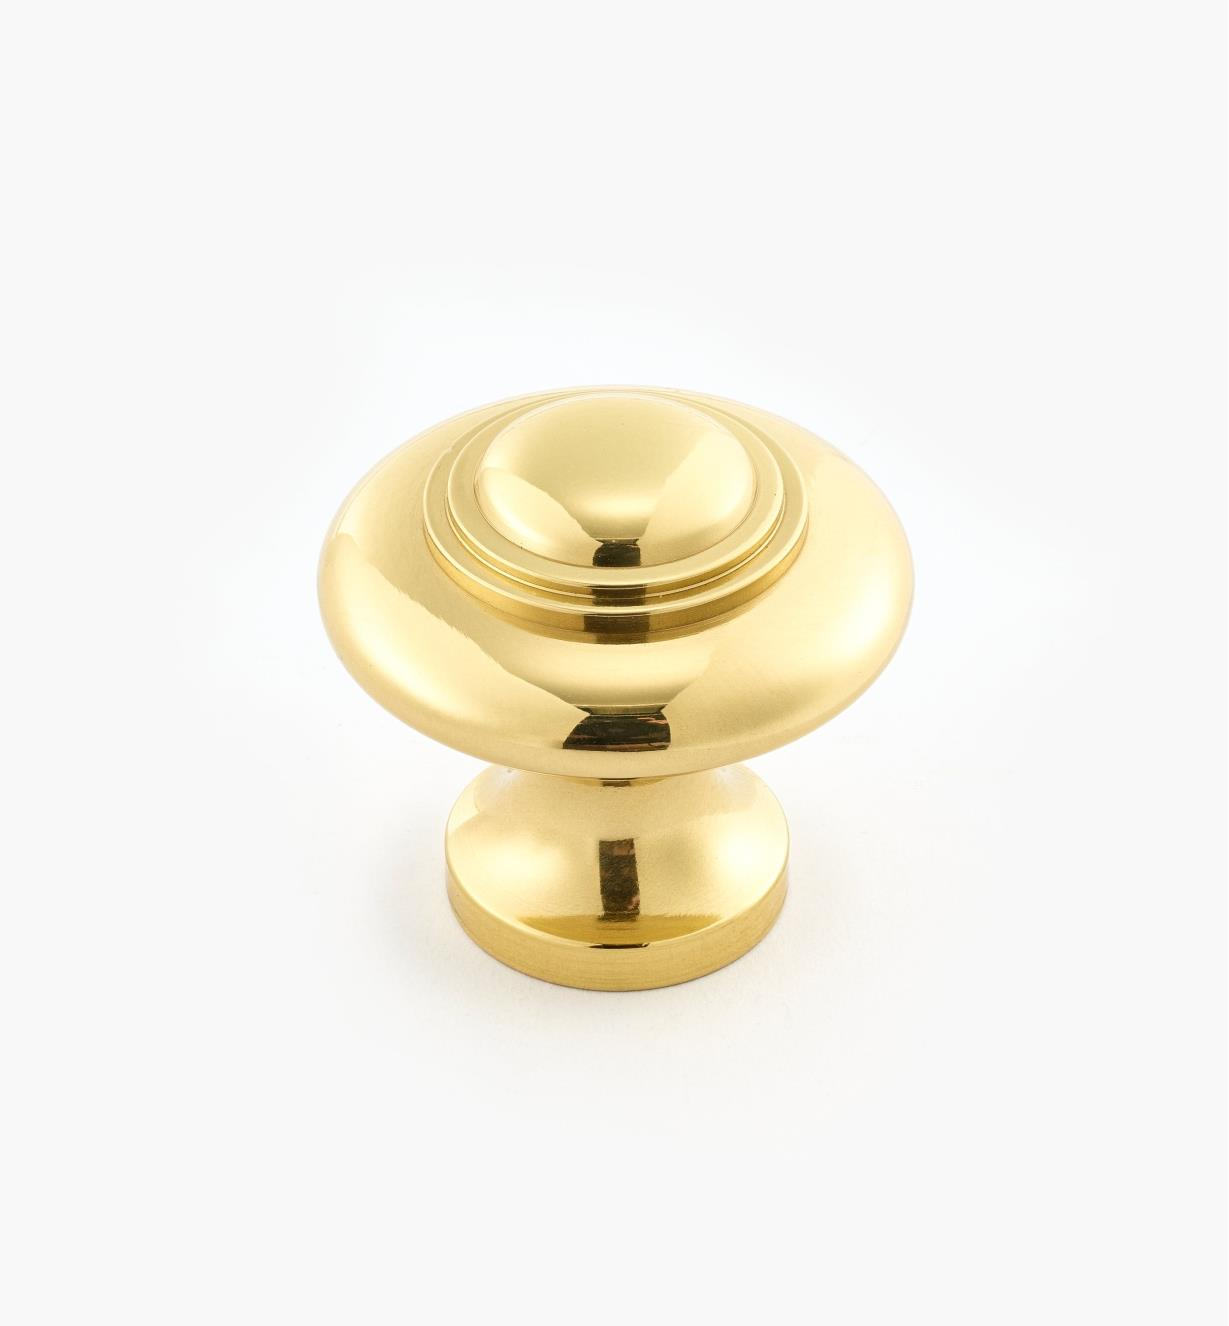 "02W2643 - 1 5/16"" x 1 1/4"" Cast Brass Ring Knob, Polished Brass"